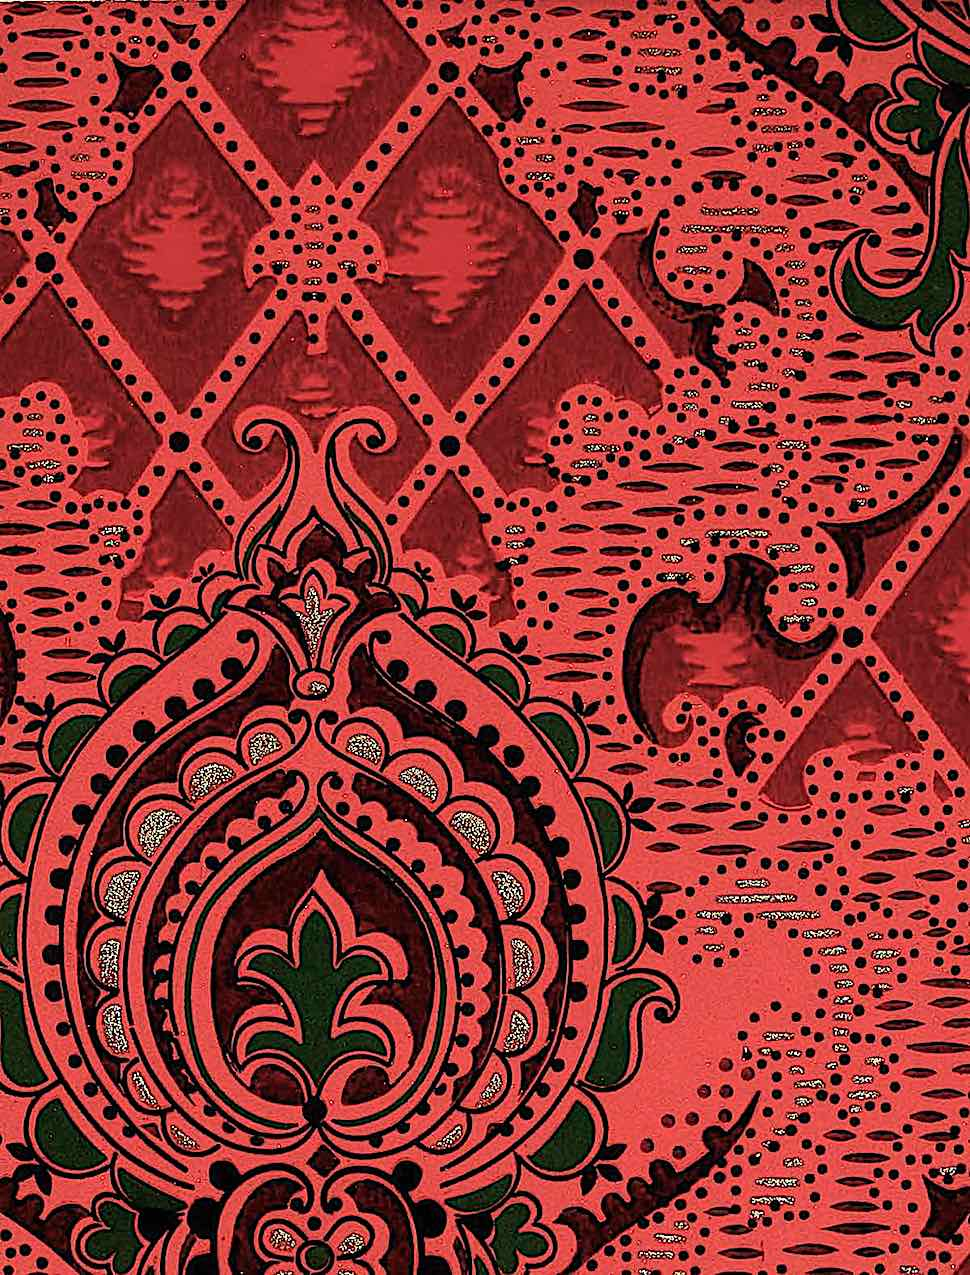 1906 wallpaper in red and gold